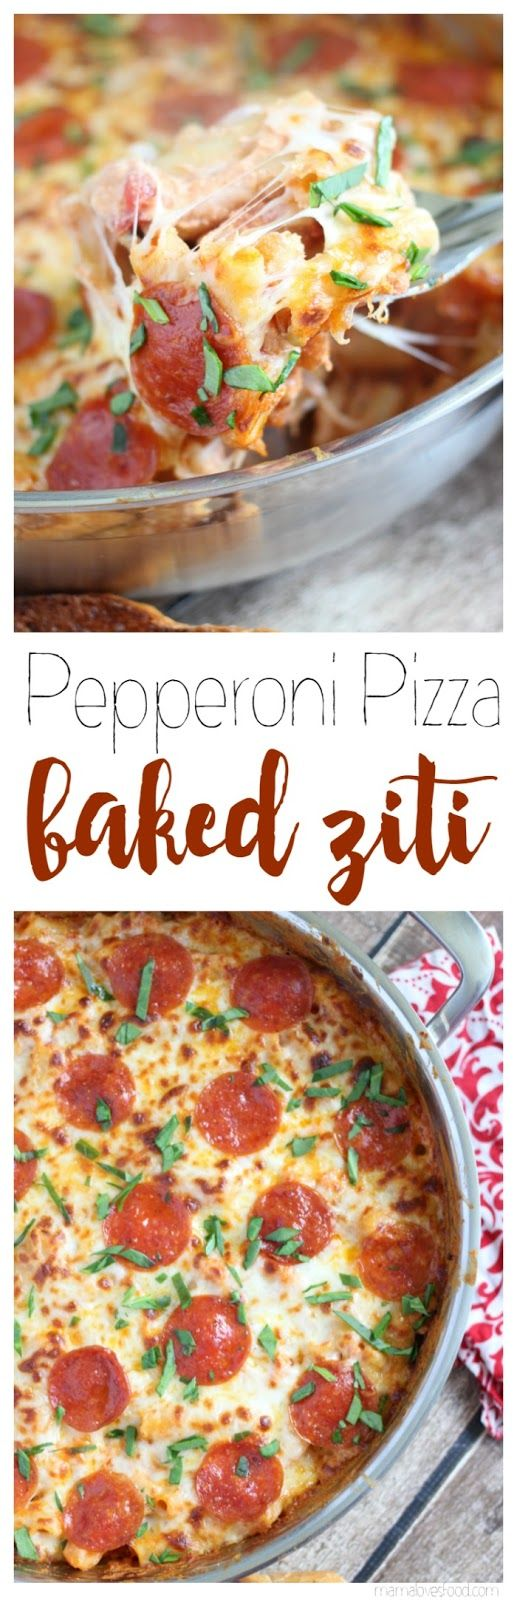 Pepperoni Pizza Baked Ziti - ONE POT MAGIC!  my kids call this surprise pizza and they LOVE it :-D  #GameForBasketball #ad